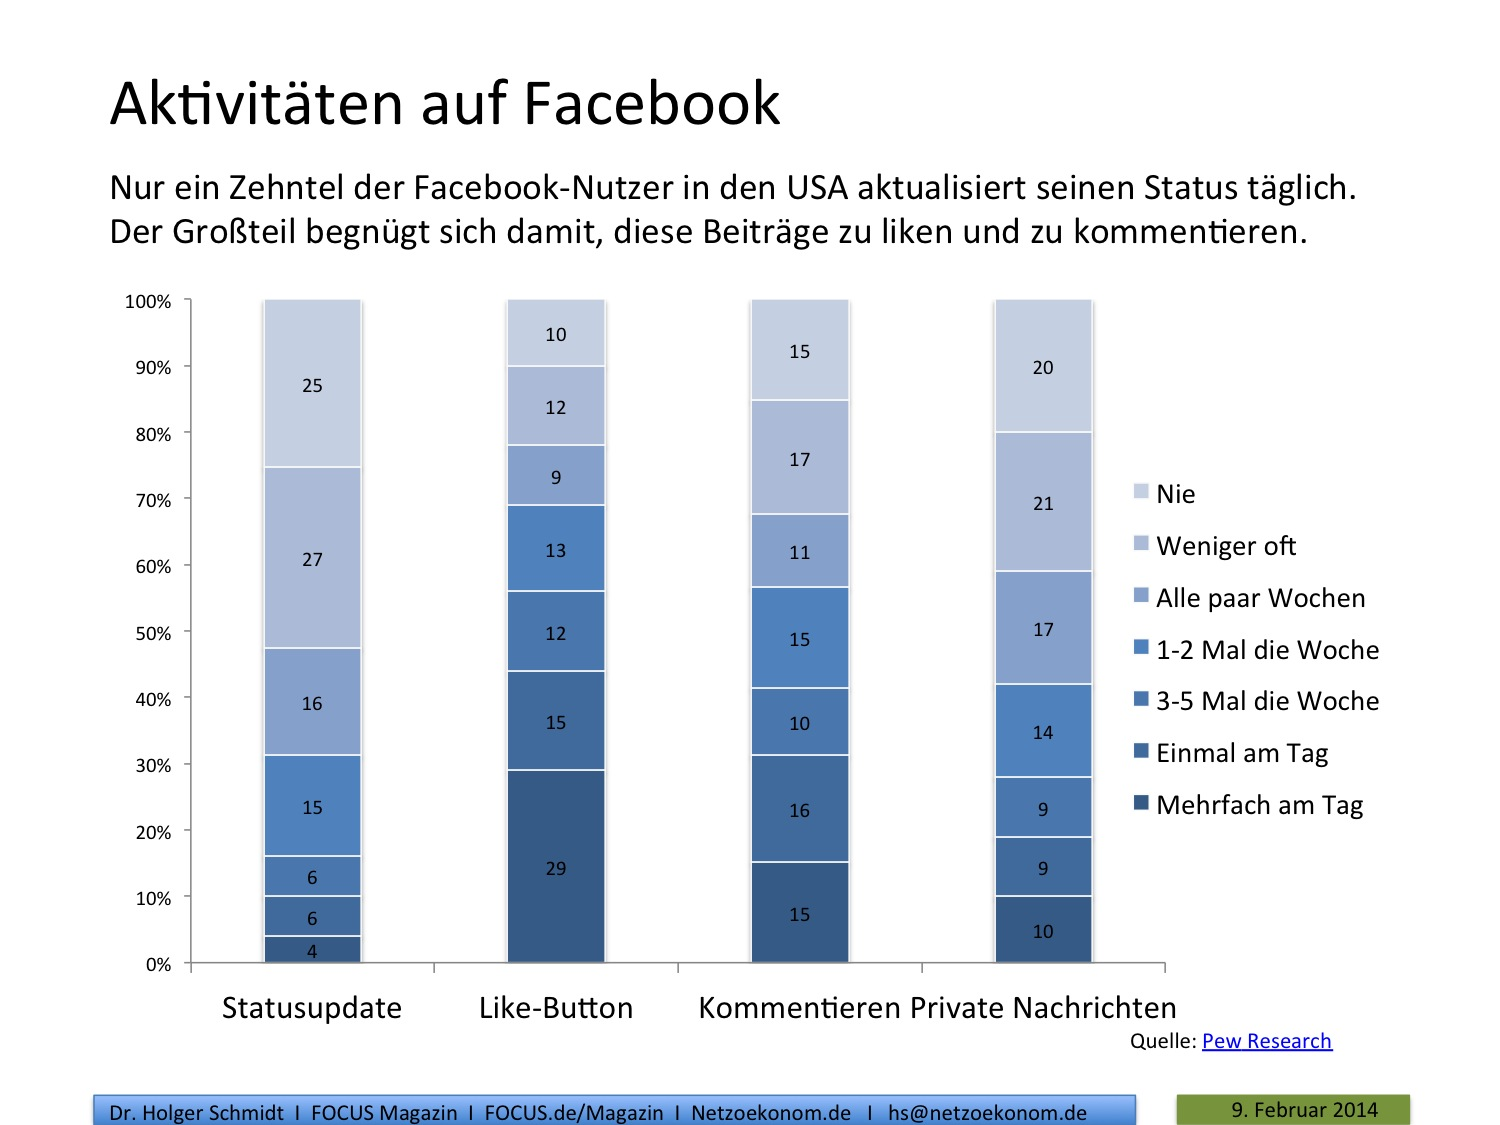 Quelle: Pew-Research